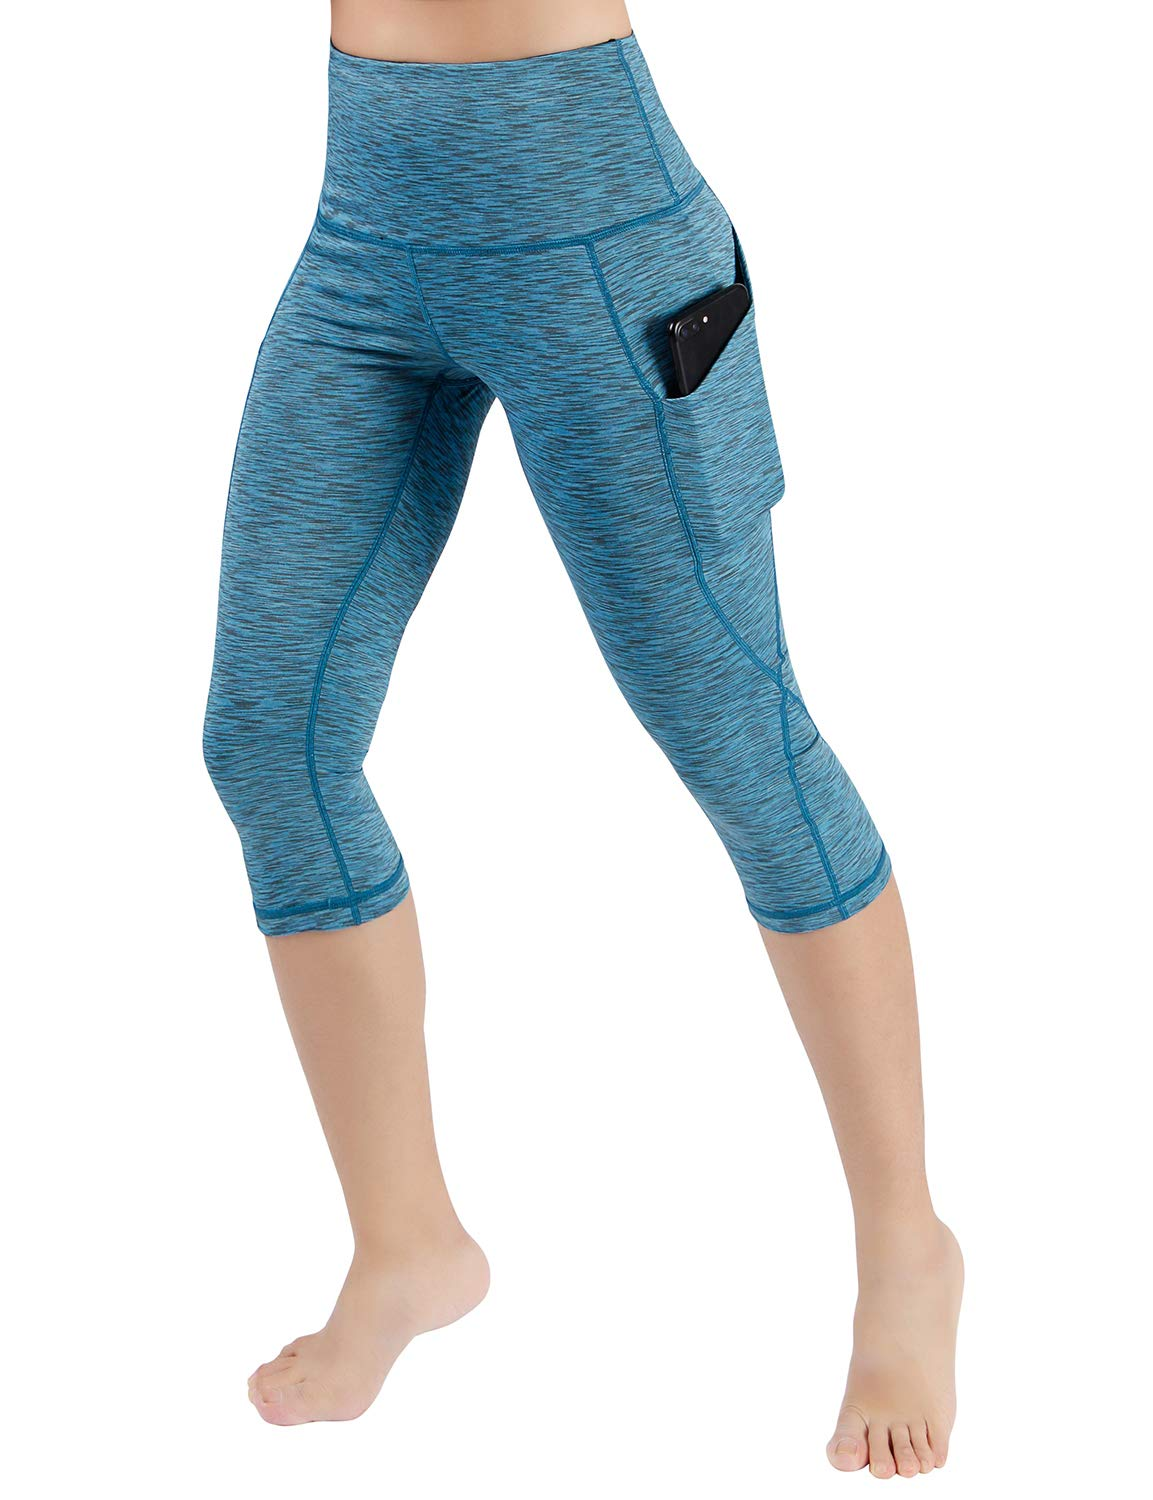 ODODOS Women's High Waist Yoga Capris with Pockets,Tummy Control,Workout Capris Running 4 Way Stretch Yoga Leggings with Pockets,SpaceDyeBlue,Large by ODODOS